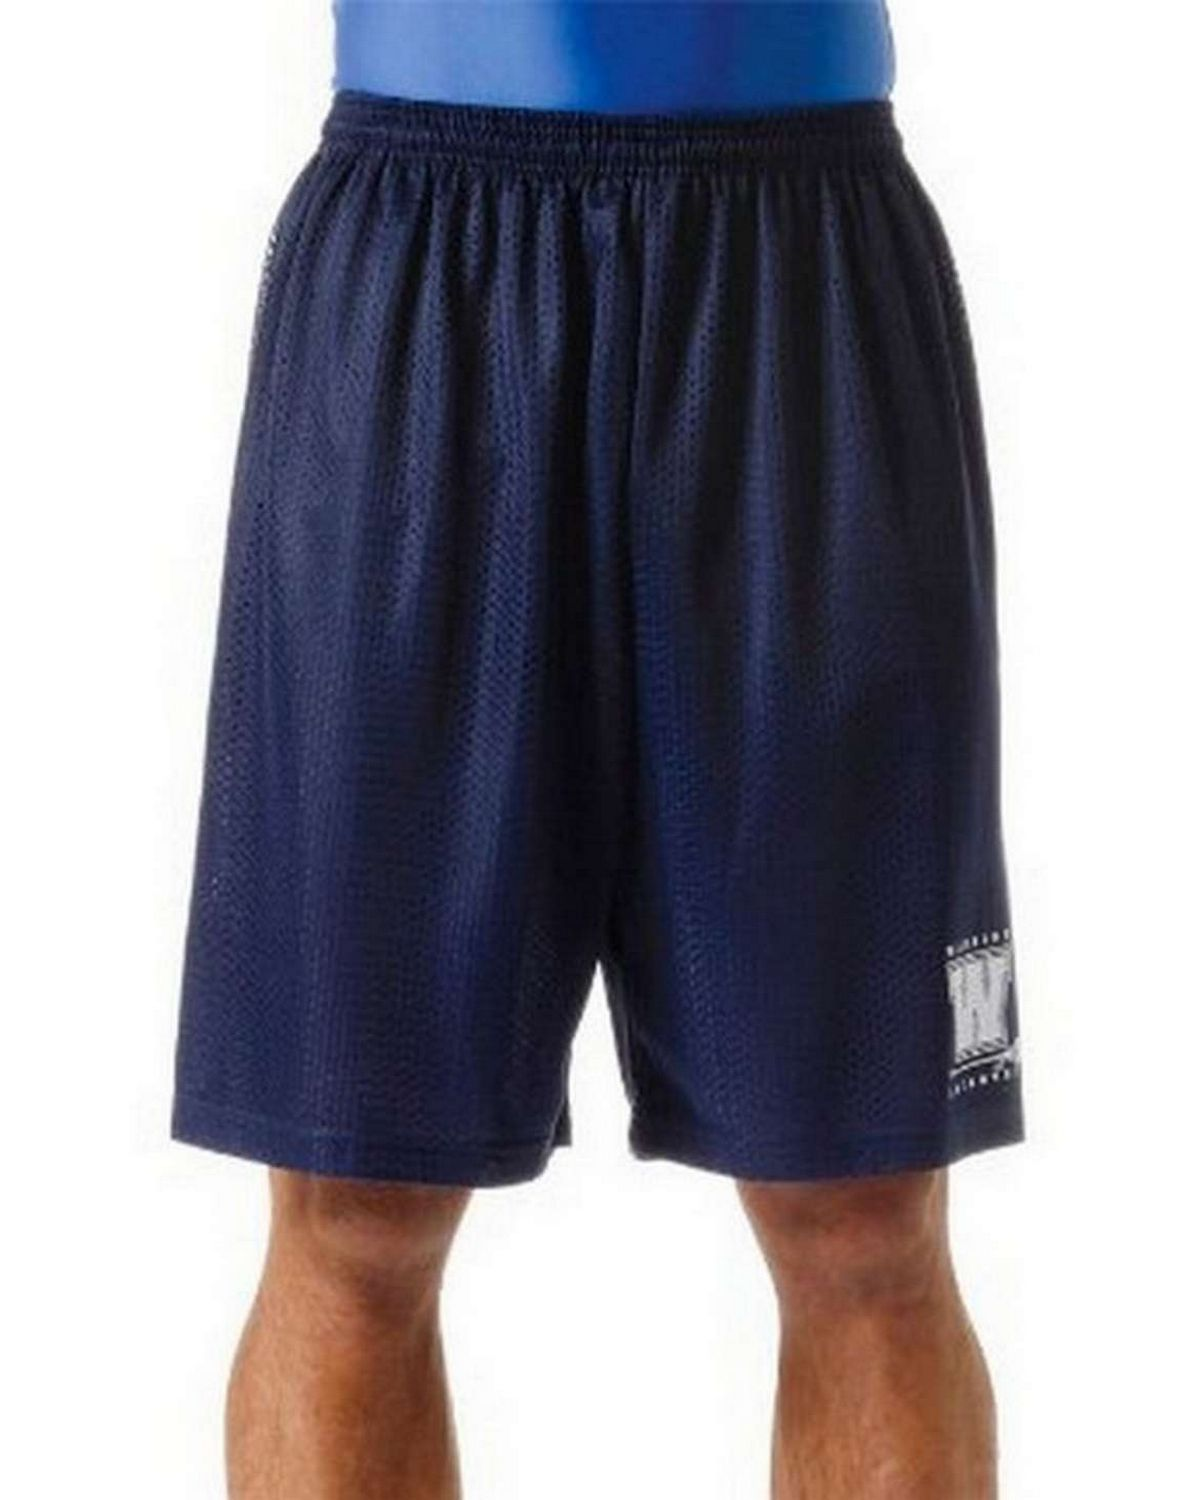 A4 NM5019 Adult Utility 9 Mesh Shorts